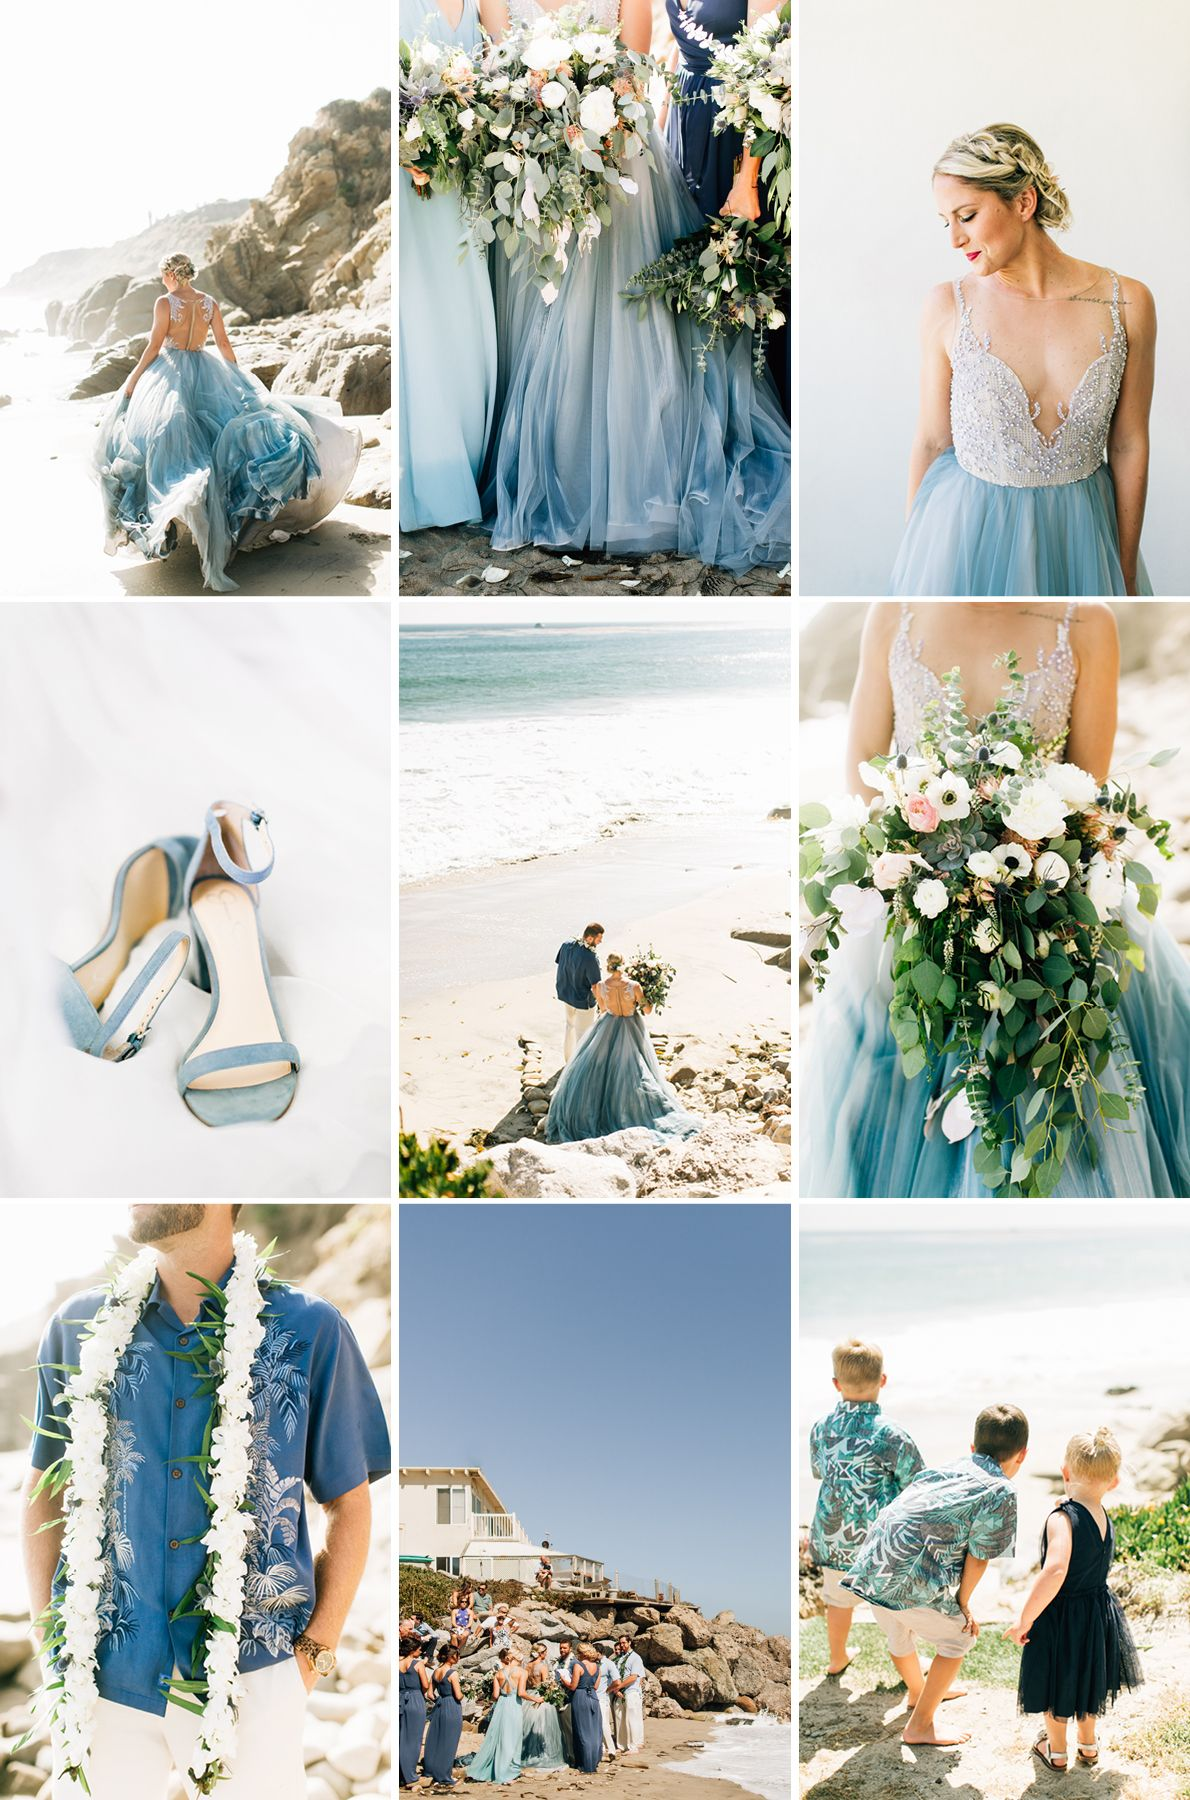 Beach Wedding Dreams With A Blue, Green + White Color